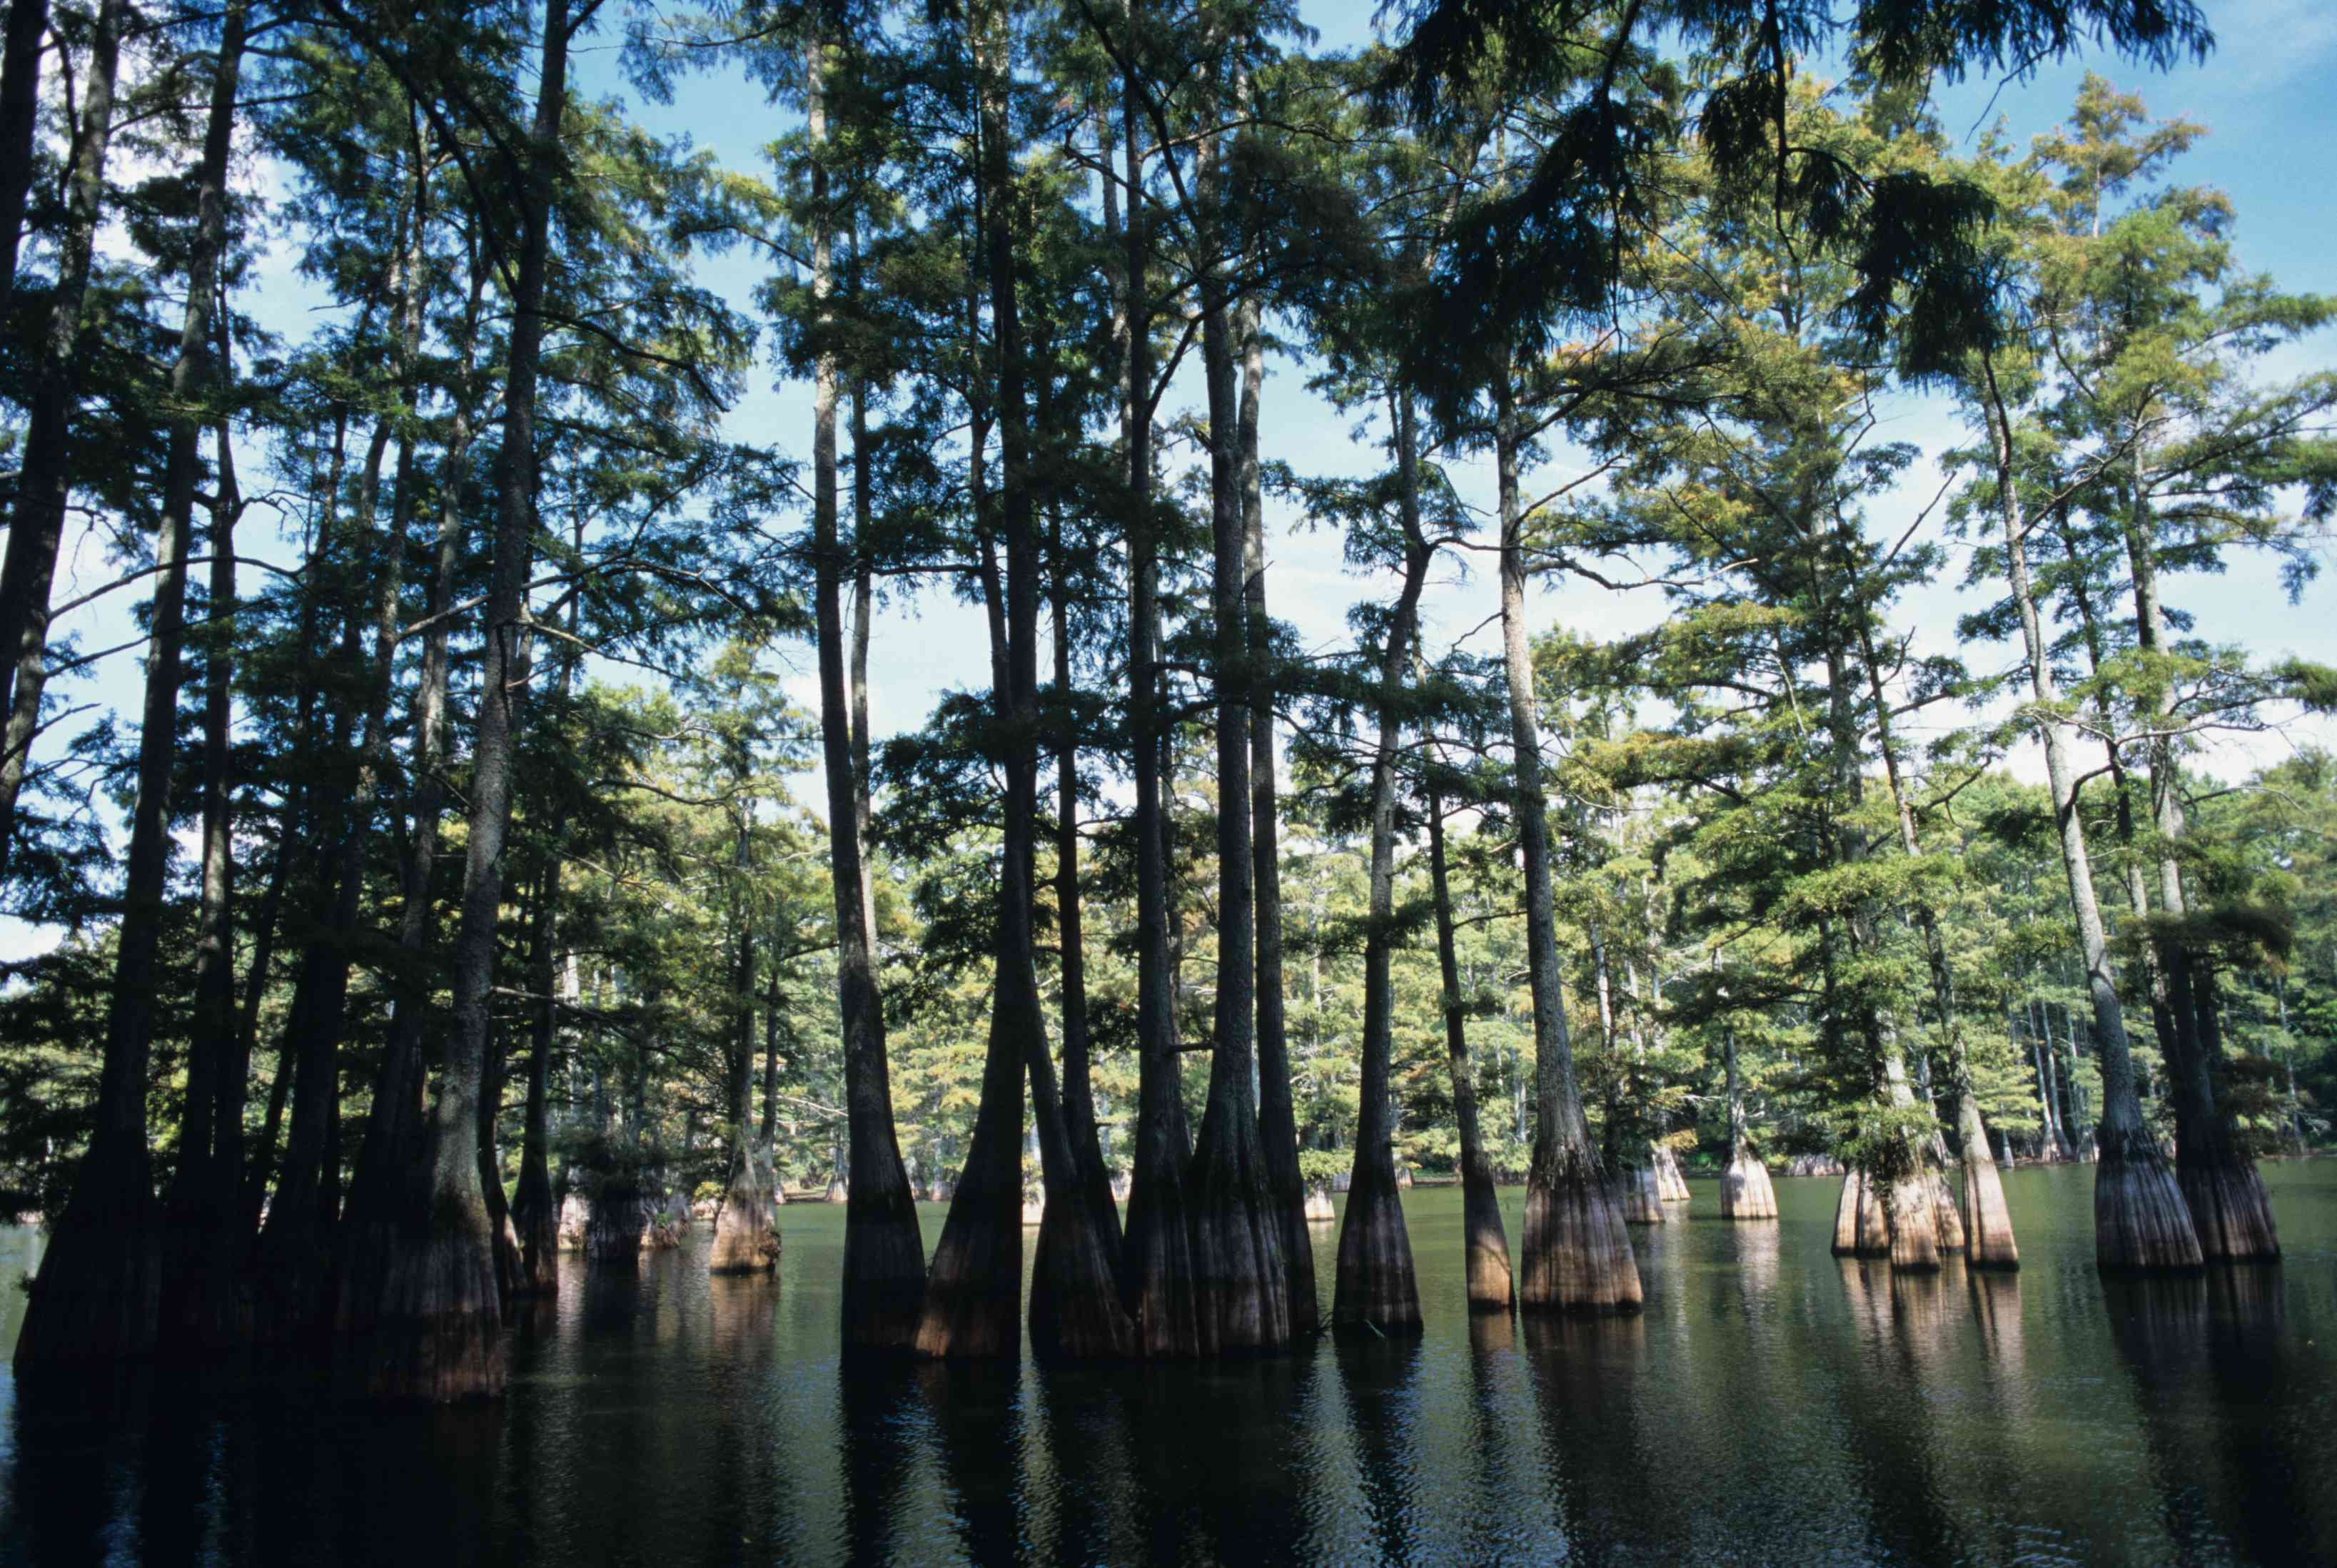 he sun shines through the swamp's trees at the Big Thicket National Preserve